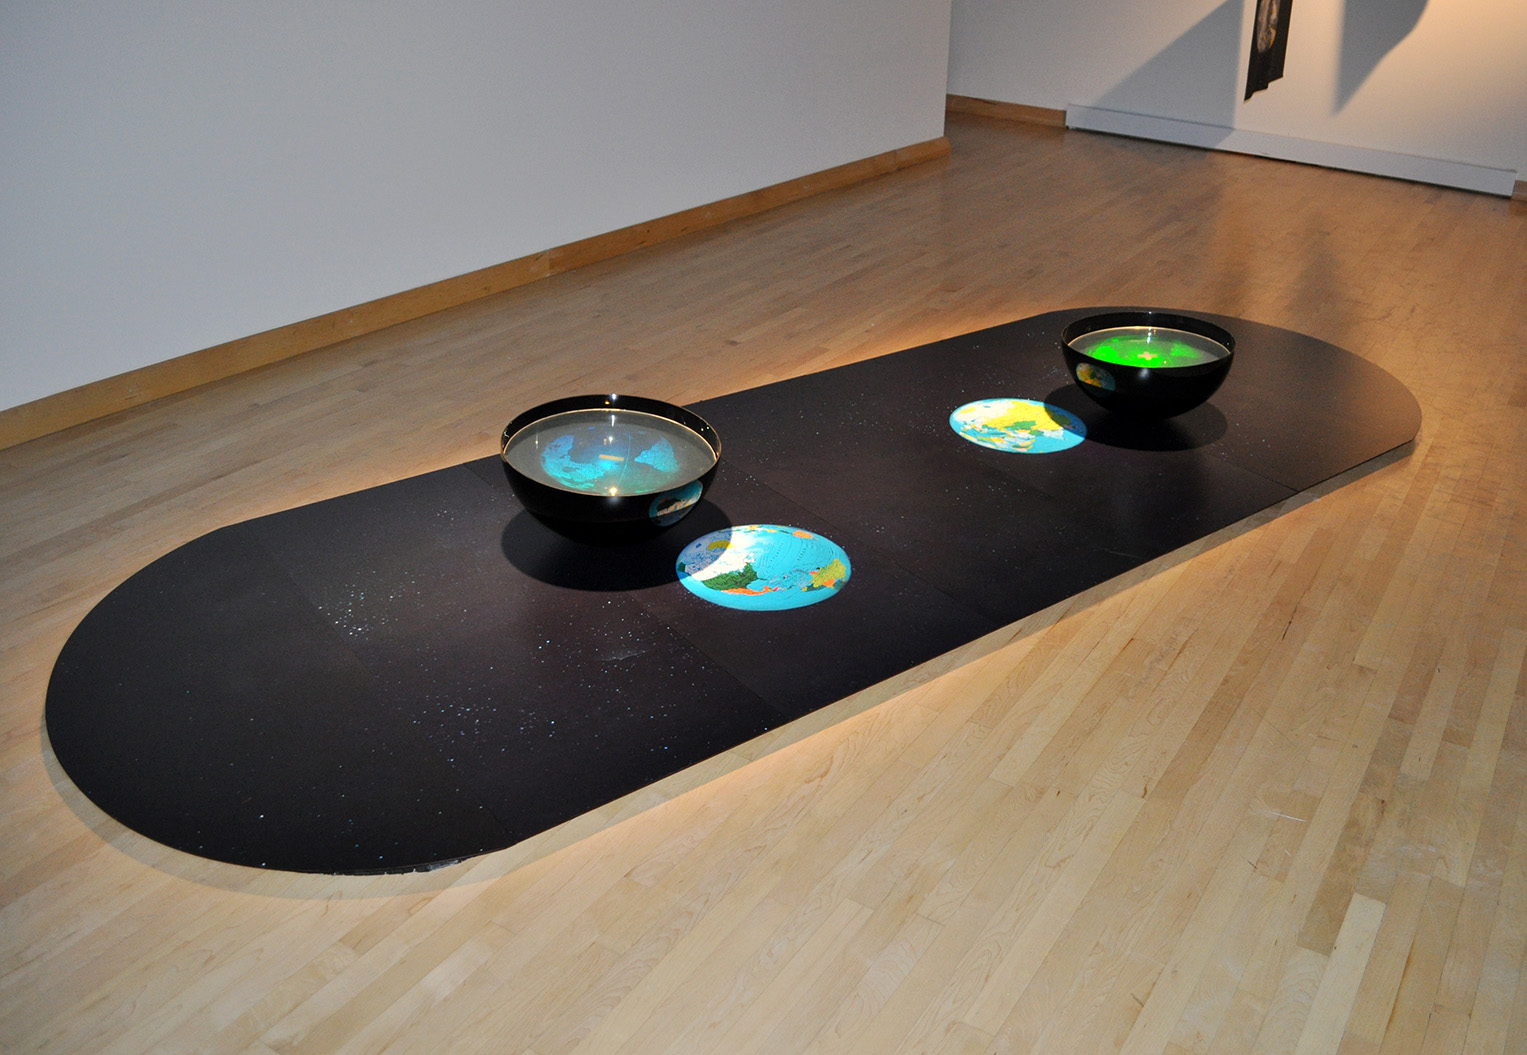 """Un monde d'incertitude"", 2008 Exhibition at the Maison de la culture Côte-des-Neiges, Montréal, Qc"